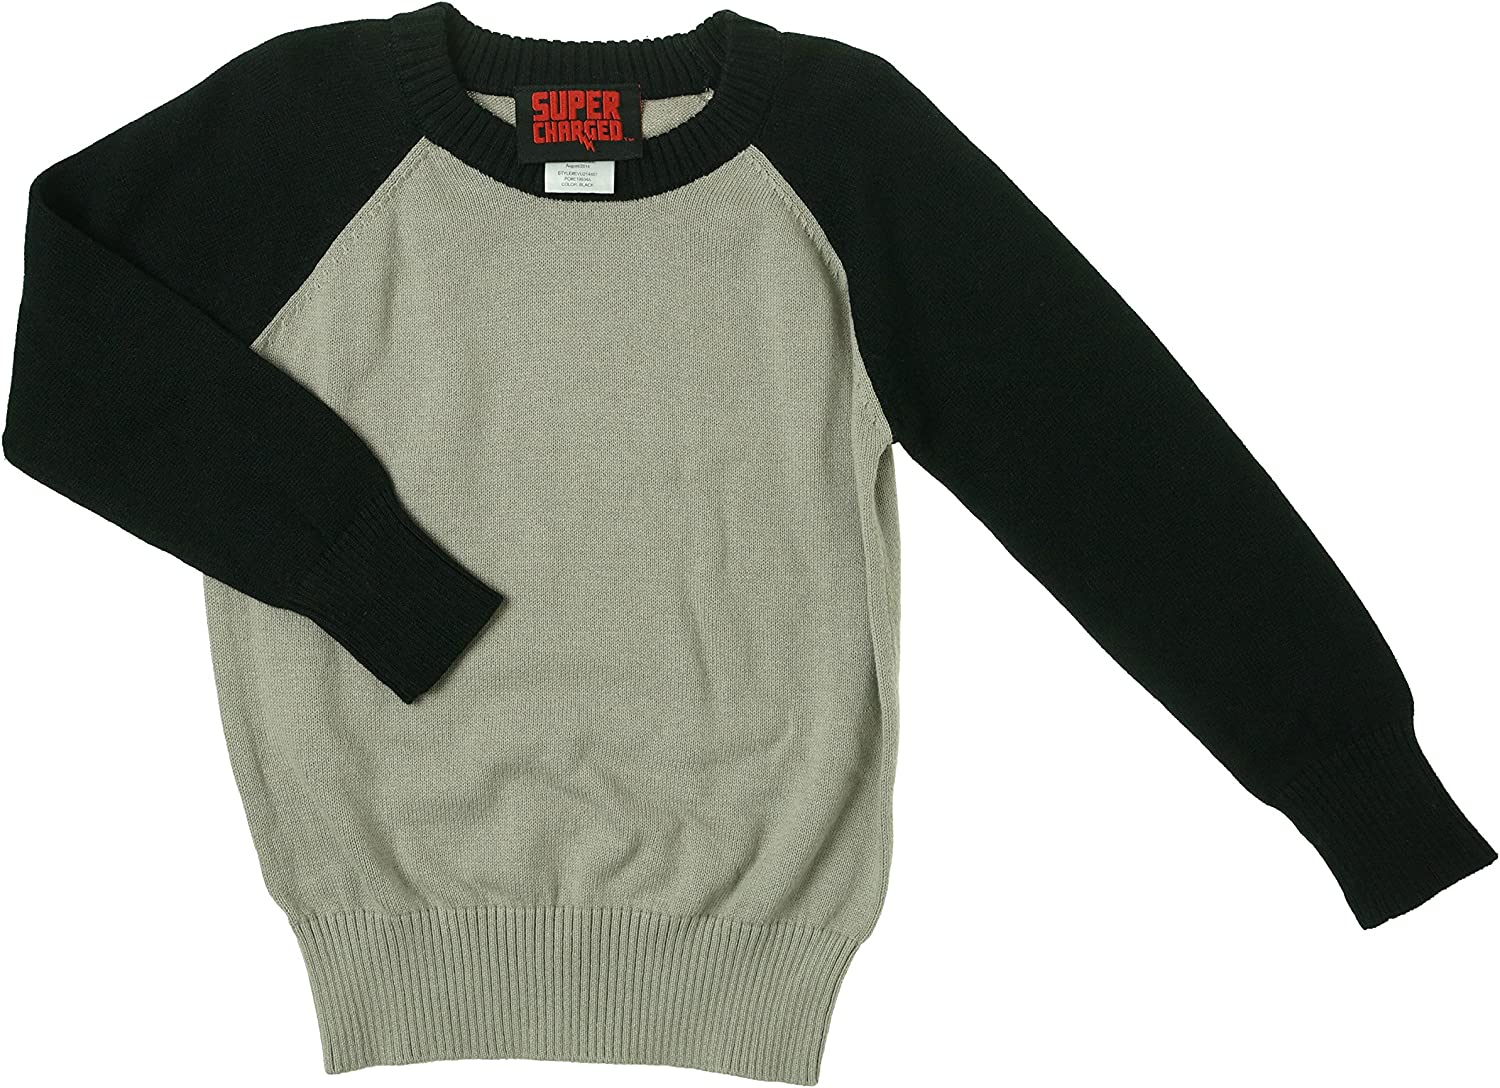 Evy California Super Charged Boys Two-Tone Crew Neck Pullover Sweater (Small/2T-3T, Black/Flint Gray)